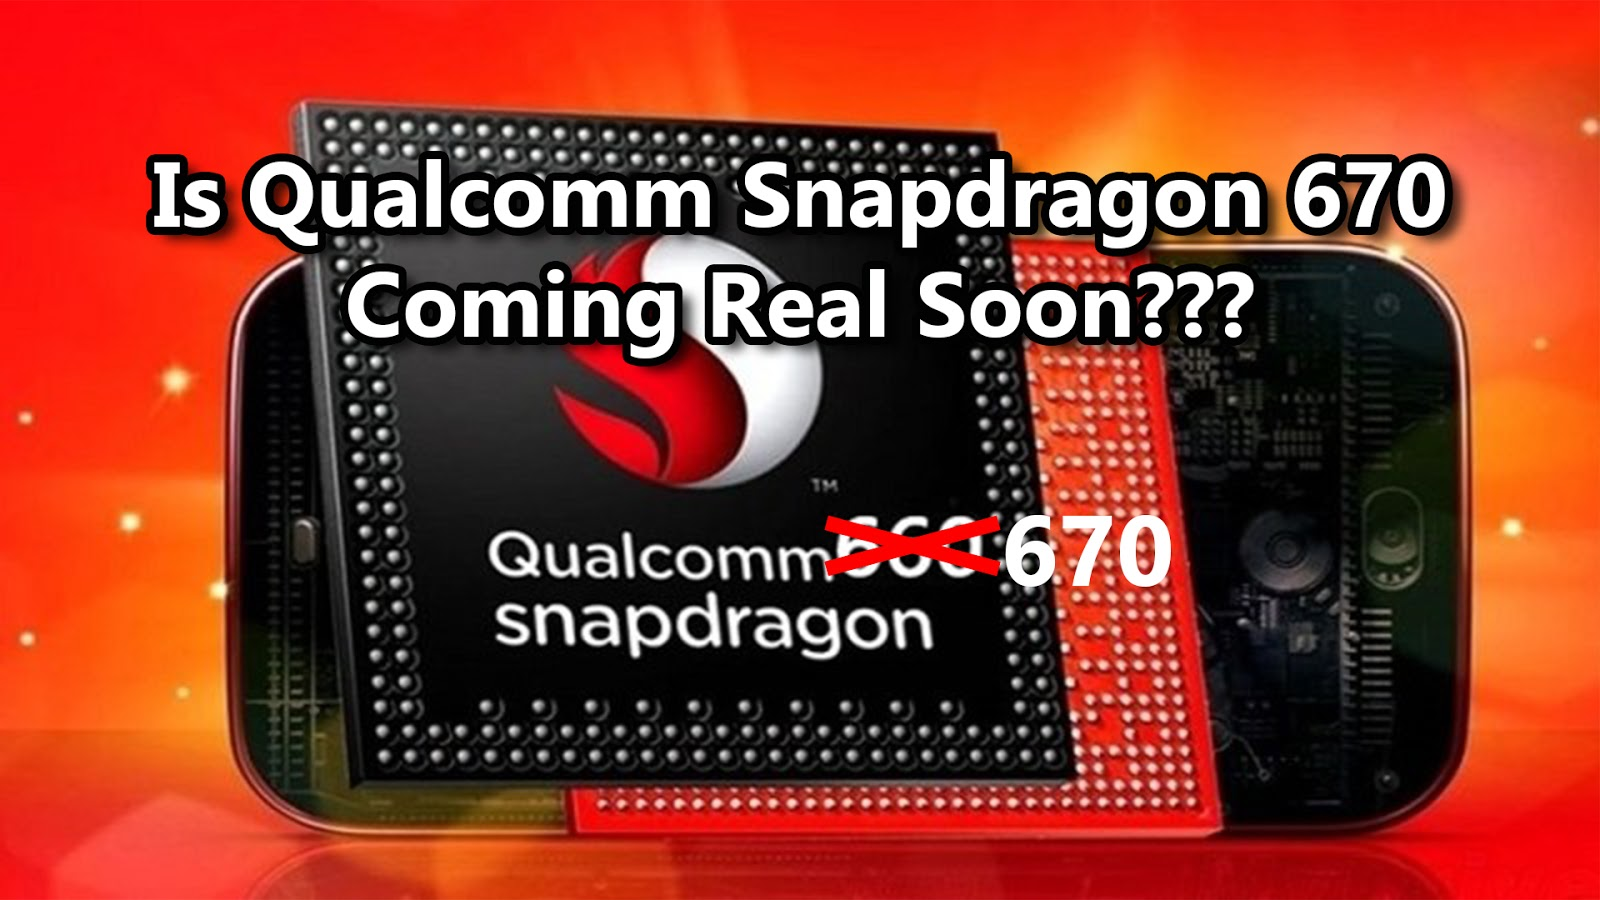 Is Qualcomm Snapdragon 670 Coming Real Soon??? | Mister